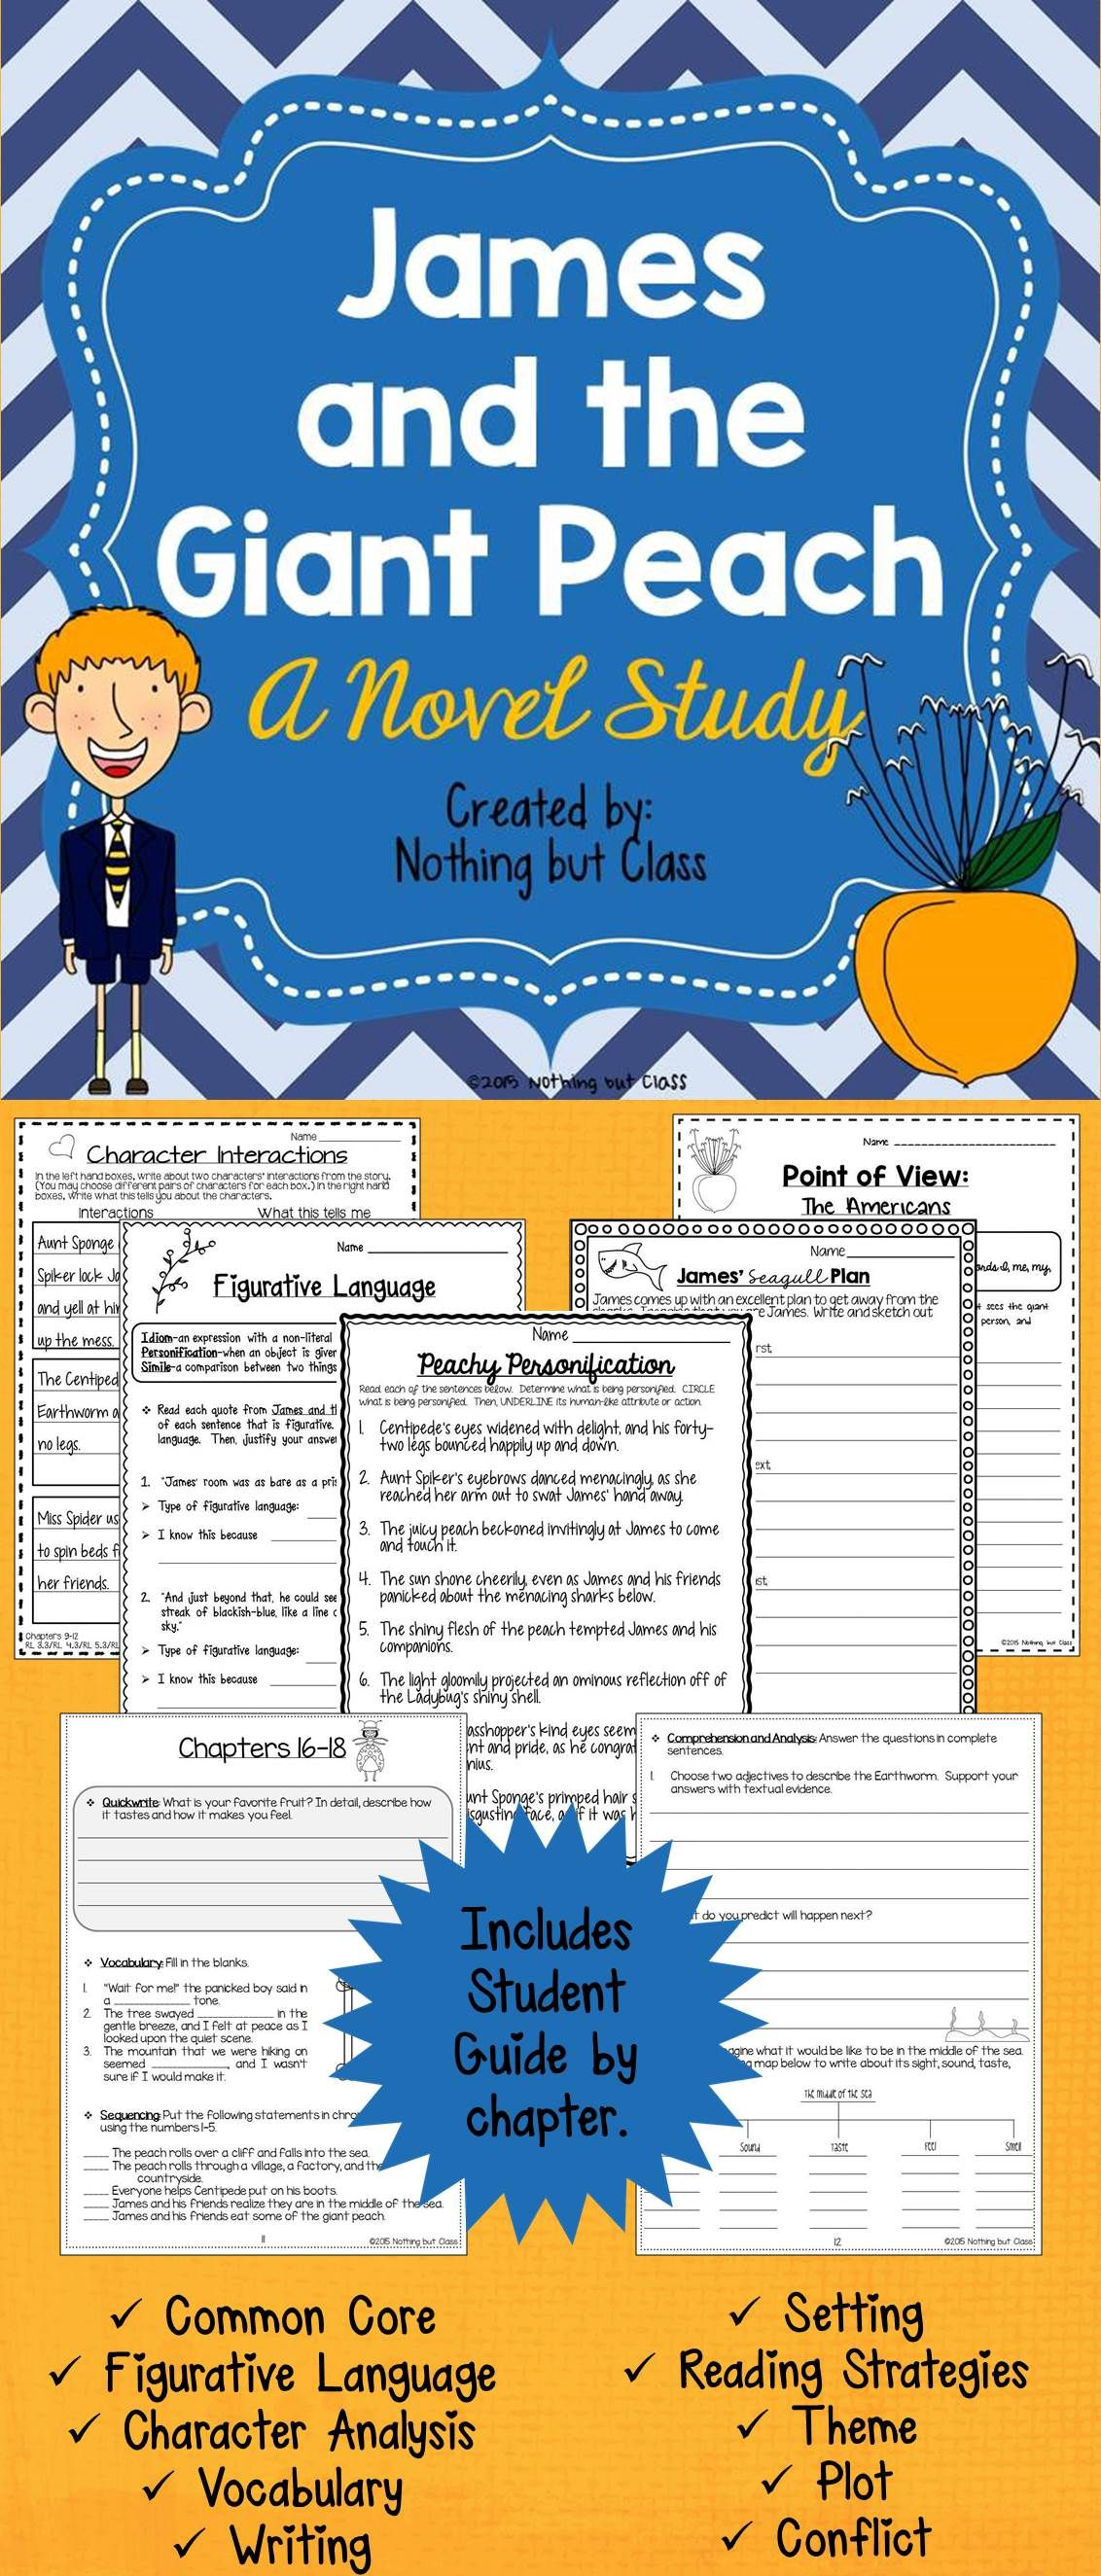 James And The Giant Peach Novel Study Unit:prehension, Activities, Tests